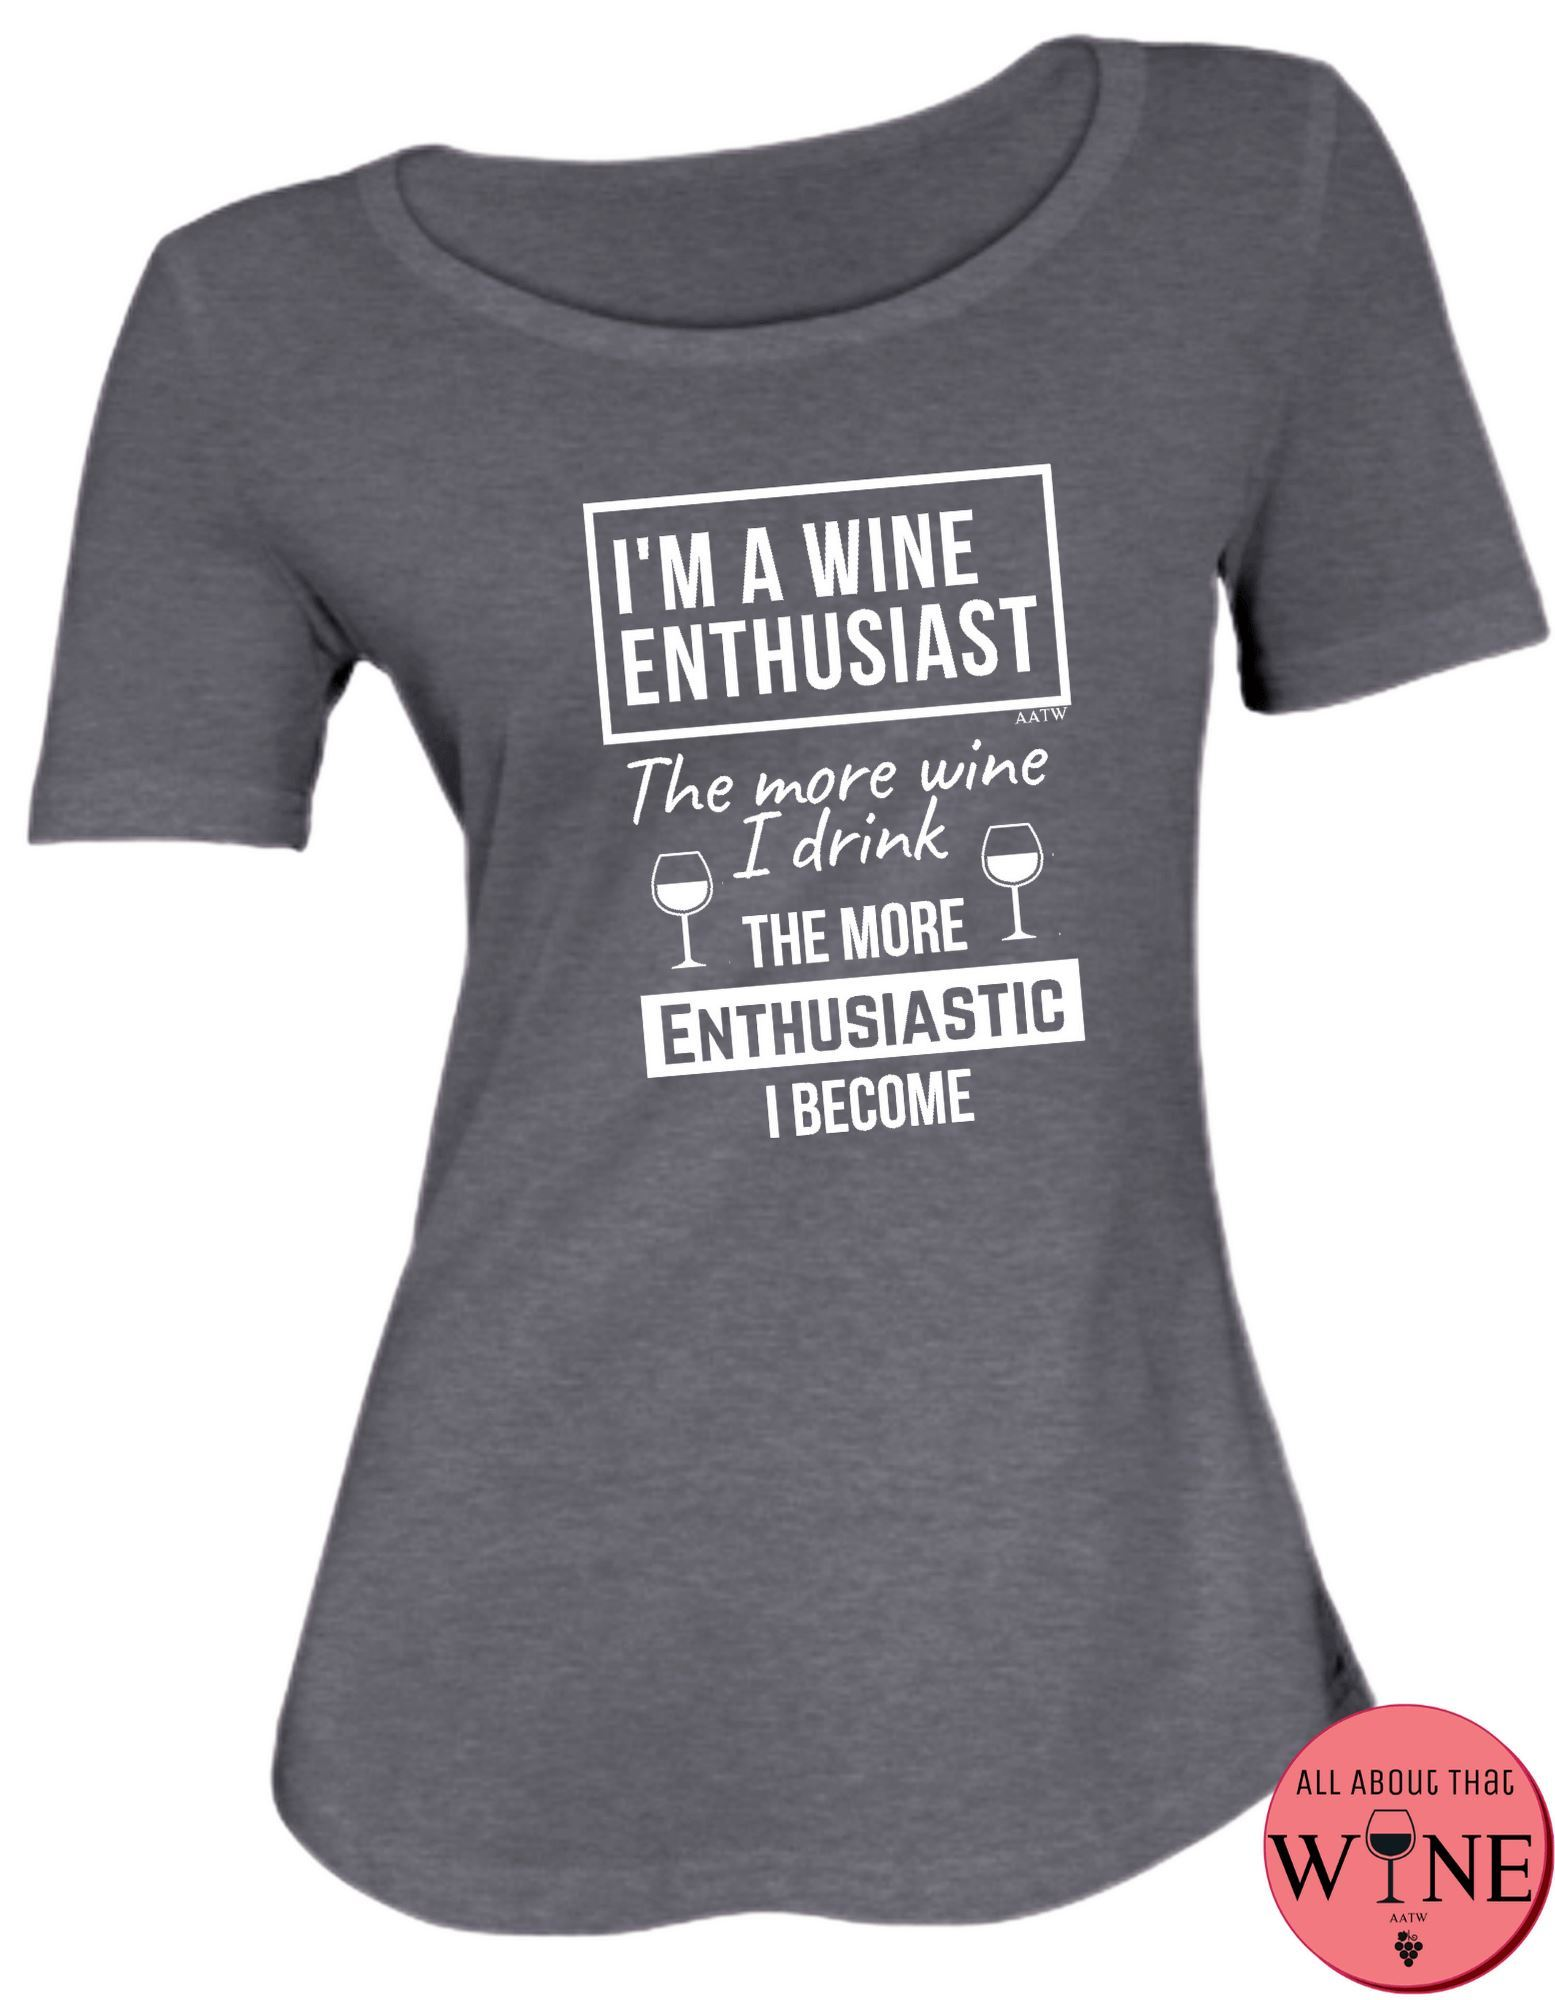 I'm A Wine Enthusiast S Charcoal melange with white